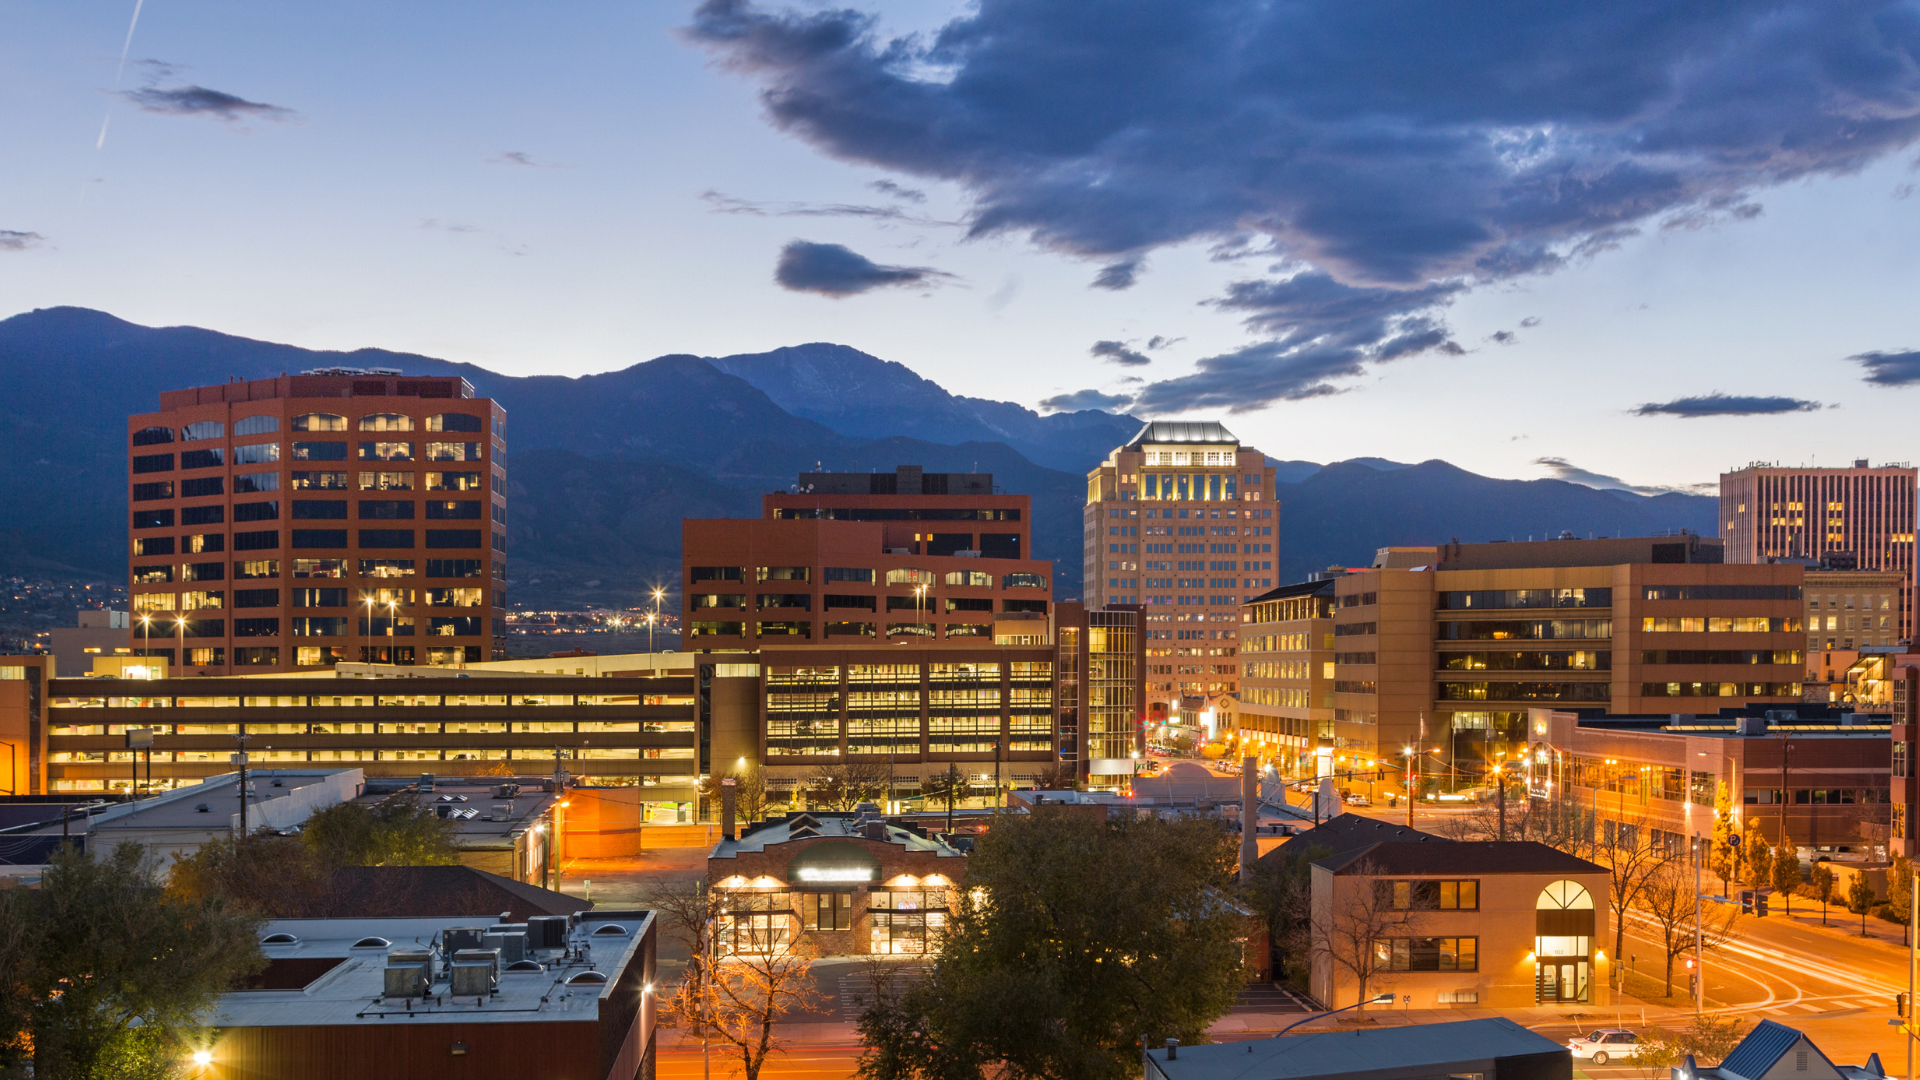 Colorado cities dominate US News list of 'Best Places to Live'  image